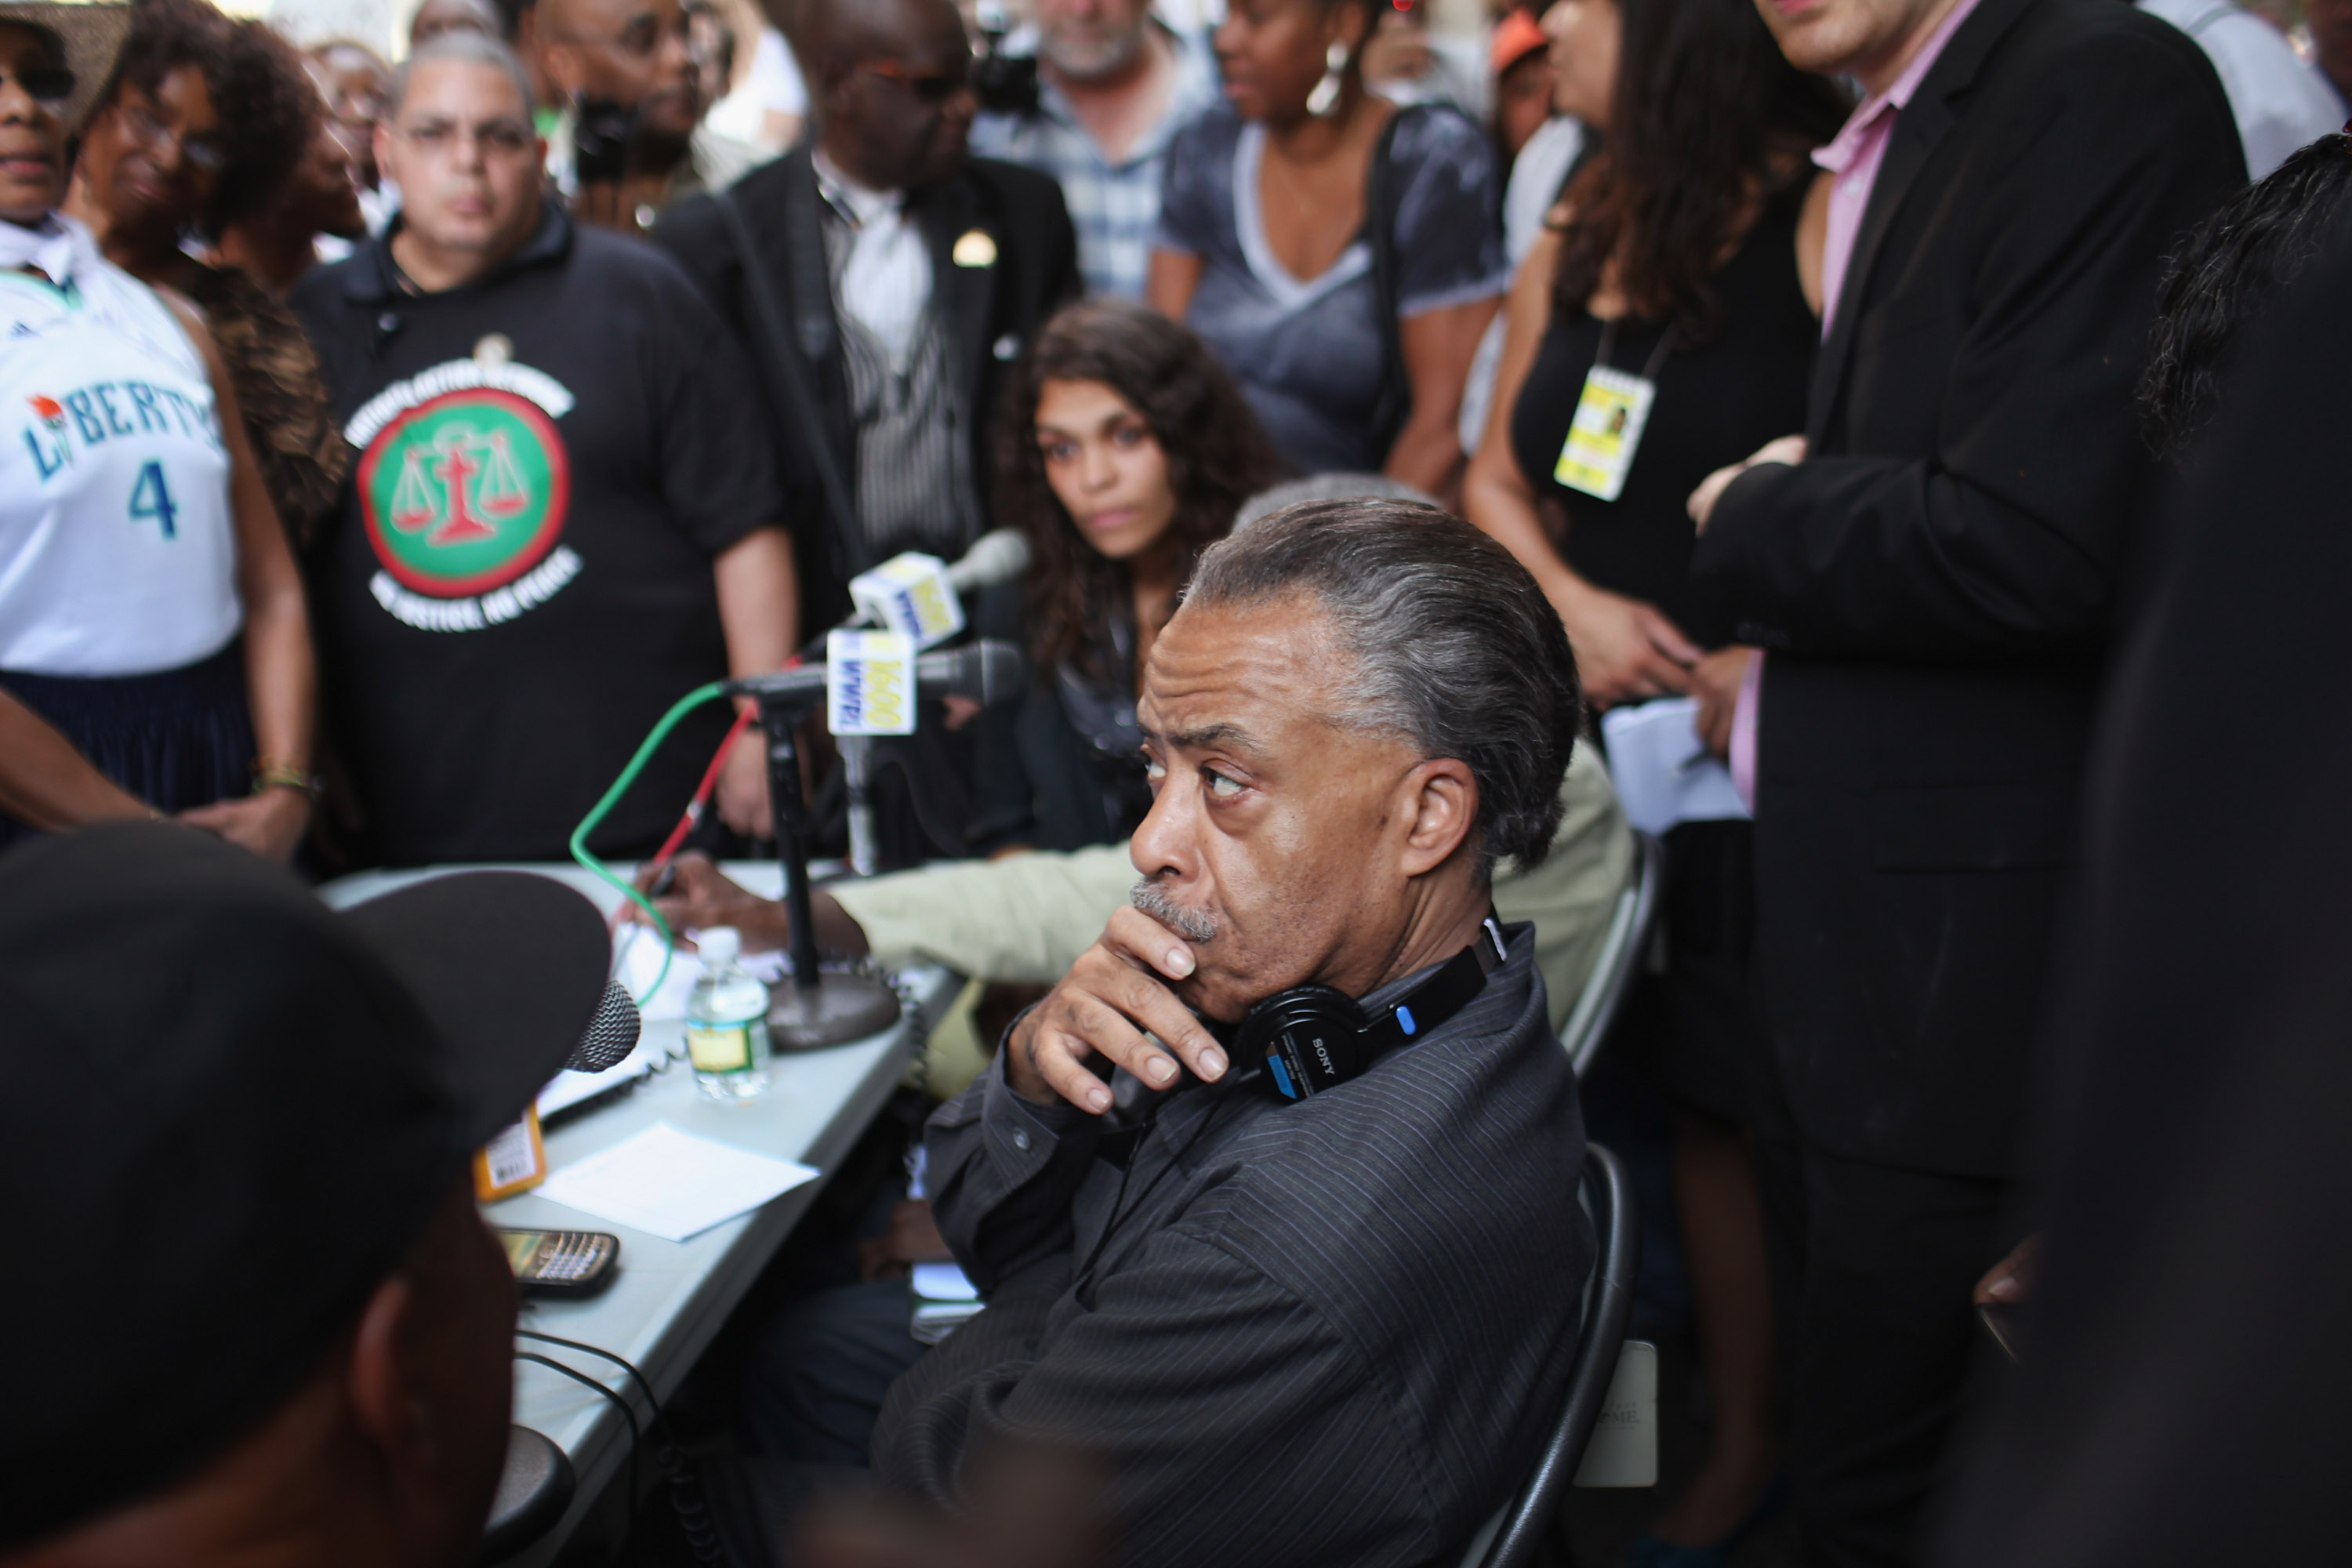 The Reverend Al Sharpton joins Occupy Wall Street protesters at Zuccotti Park in New York City on Oct. 10, 2011.